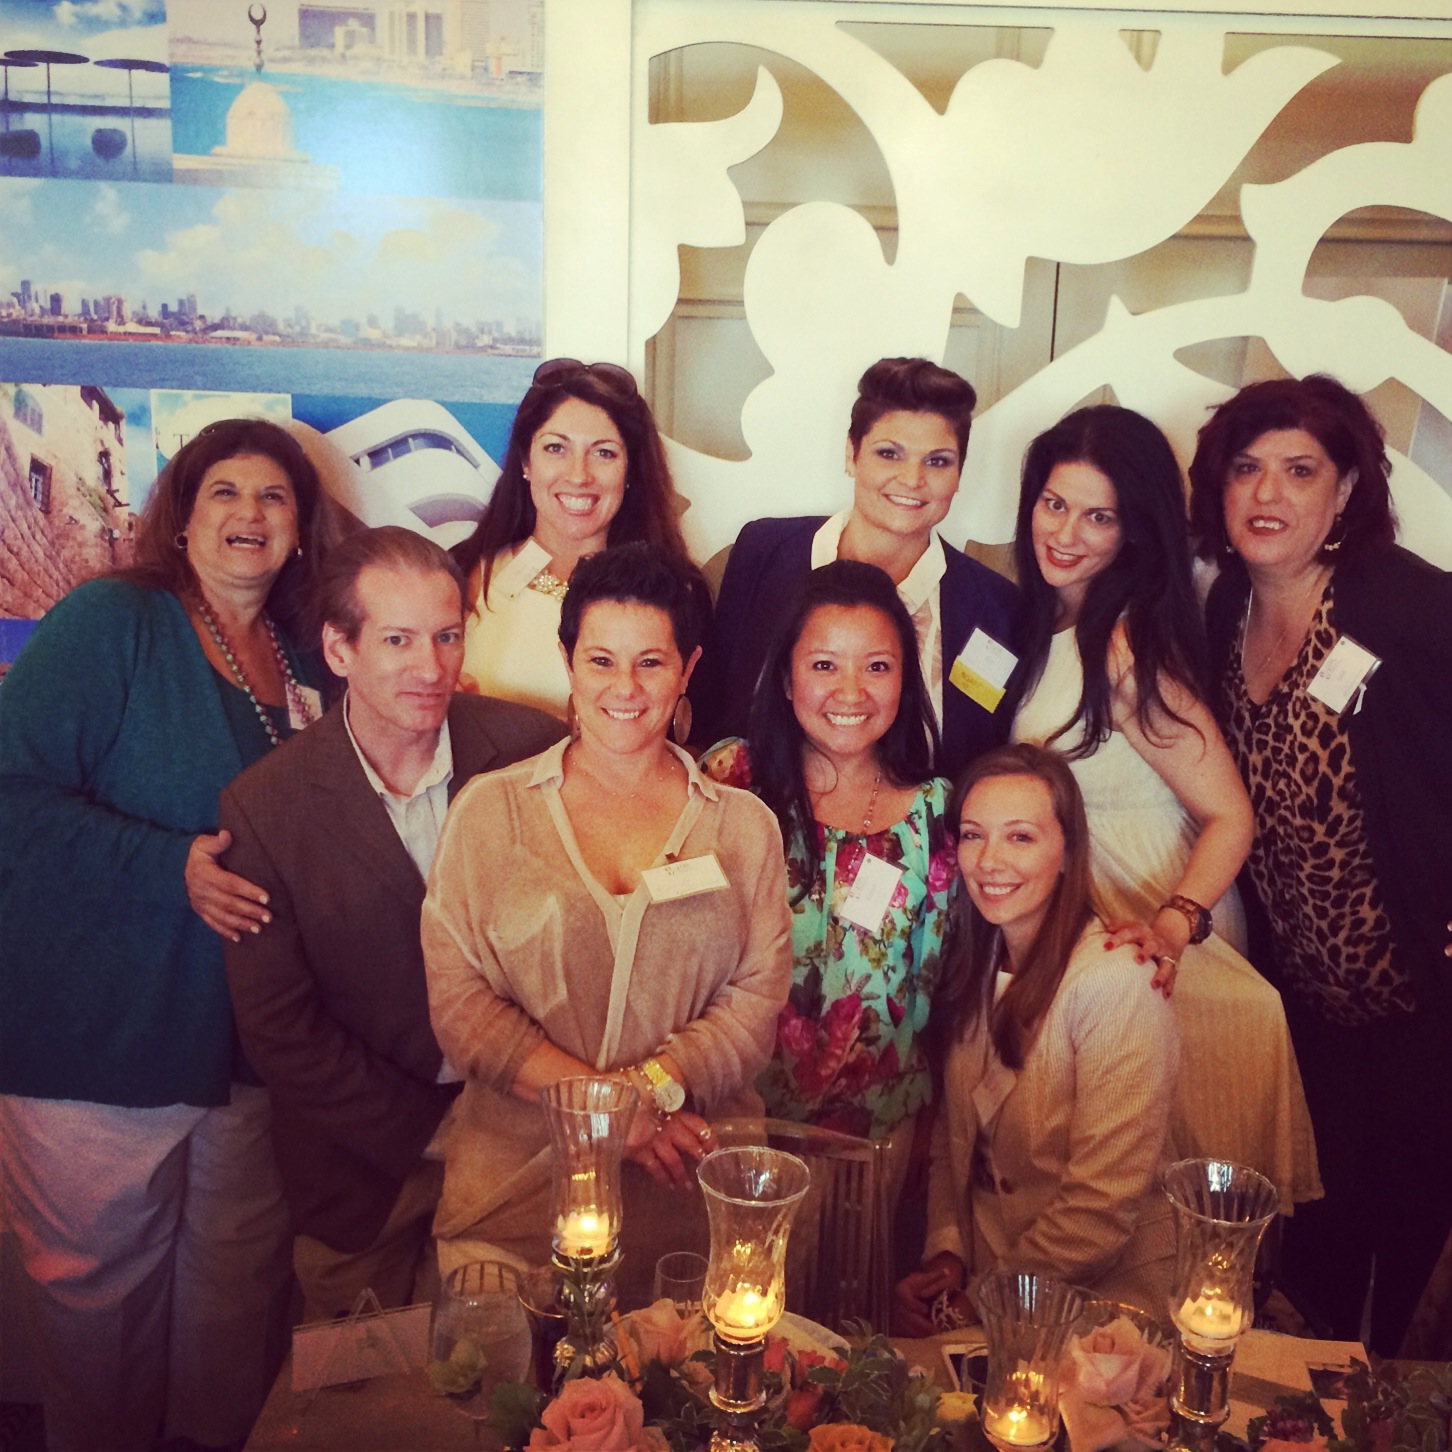 Las Vegas Wedding Planners & Industry Professionals at WIPA, hosted by Shutters on the Beach.